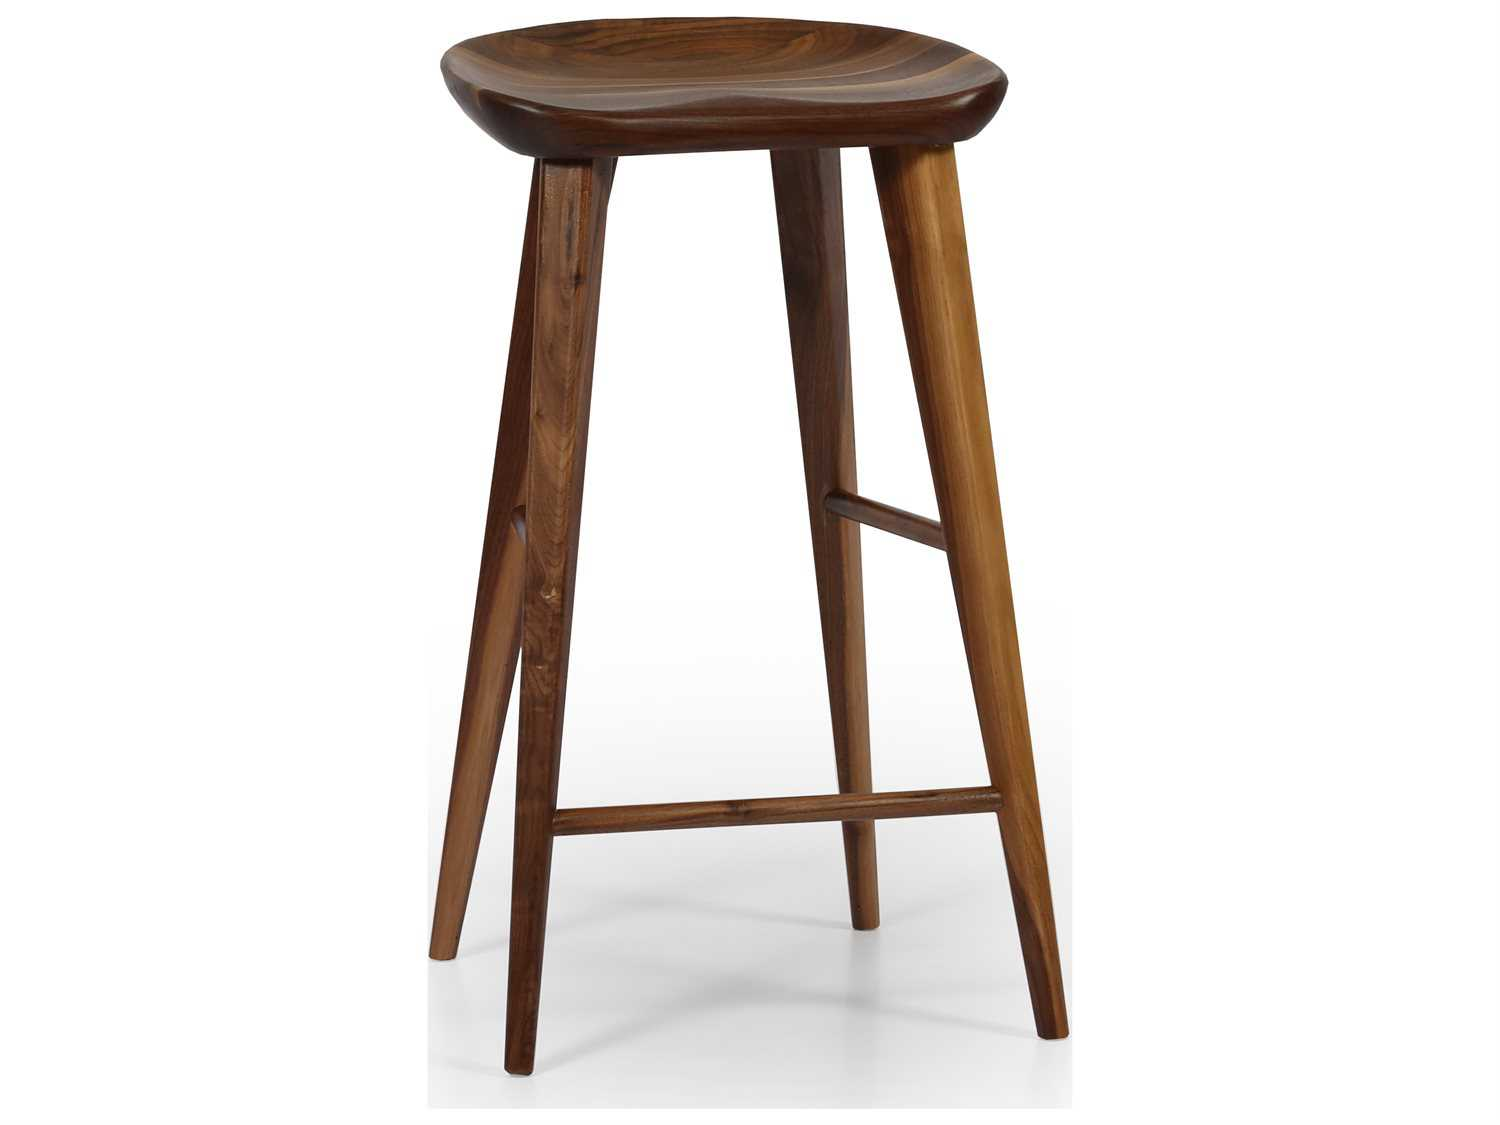 Fabulous Ion Design Taburet Walnut Counter Stool With Matte Finish Onthecornerstone Fun Painted Chair Ideas Images Onthecornerstoneorg